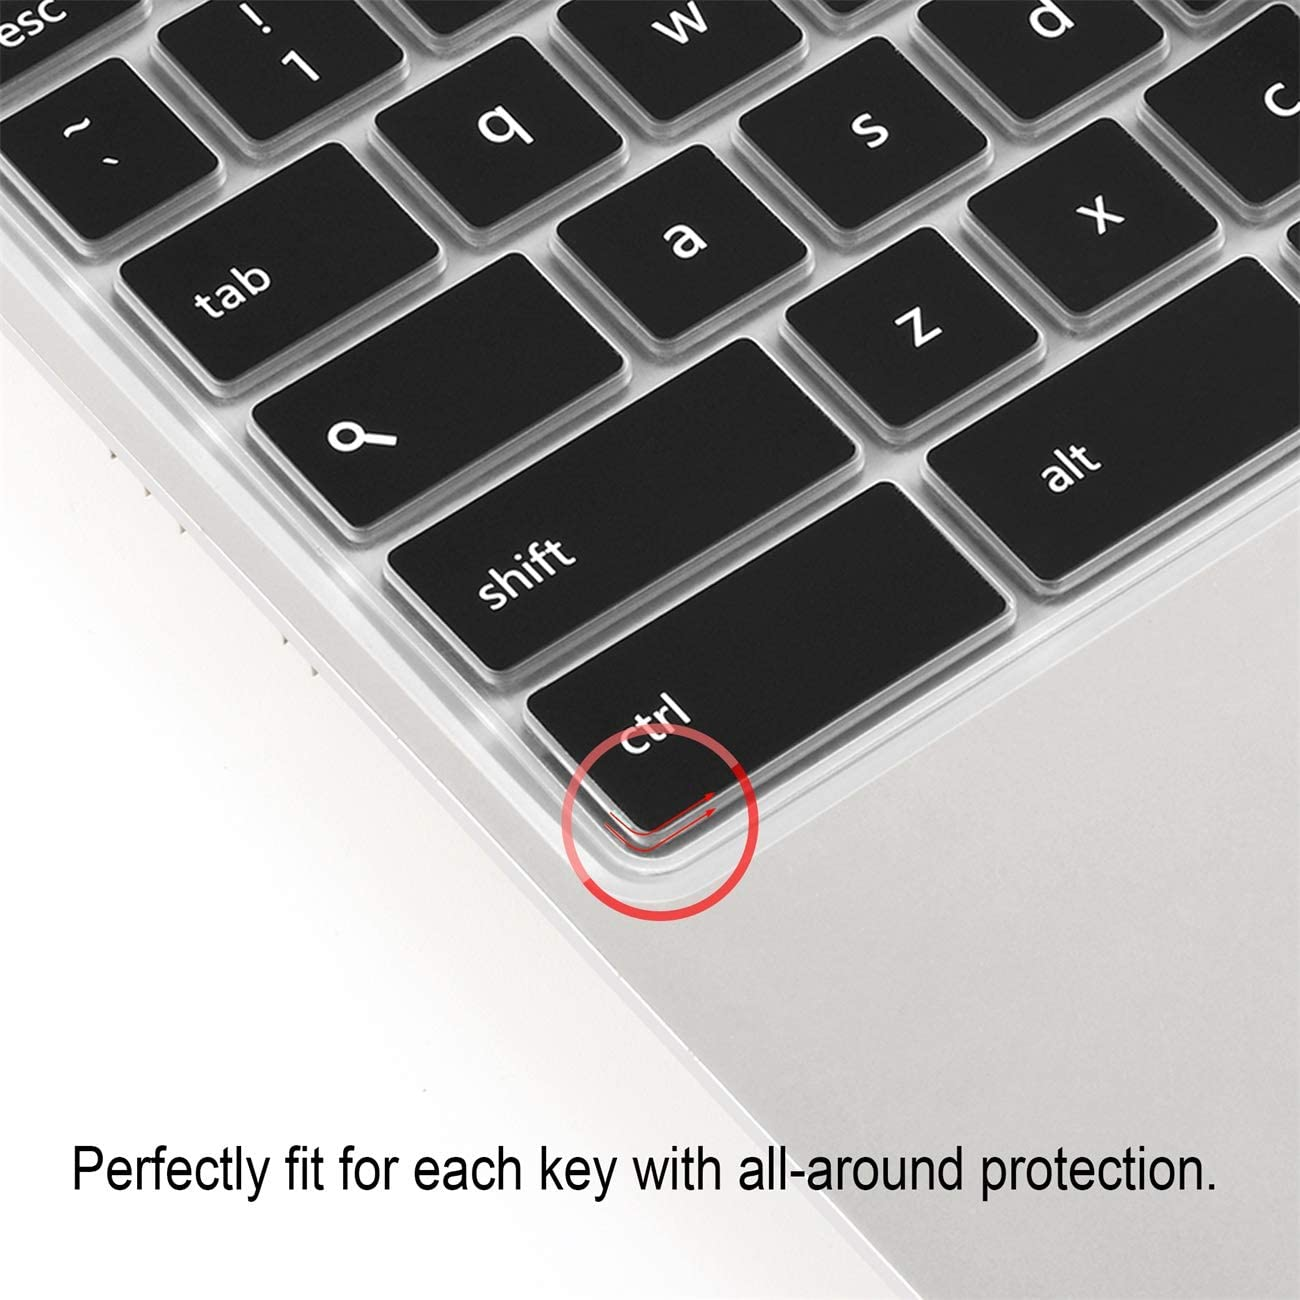 Black Keyboard Cover Skin for ASUS Chromebook 11.6 13.3// Chromebook 13//C214MA C213SA,C223 C202SA C200 C200MA C201 C201PA,Premium Ultra Thin Silicone Protector for C300 C300MA C300SA C301 2pcs Lapogy